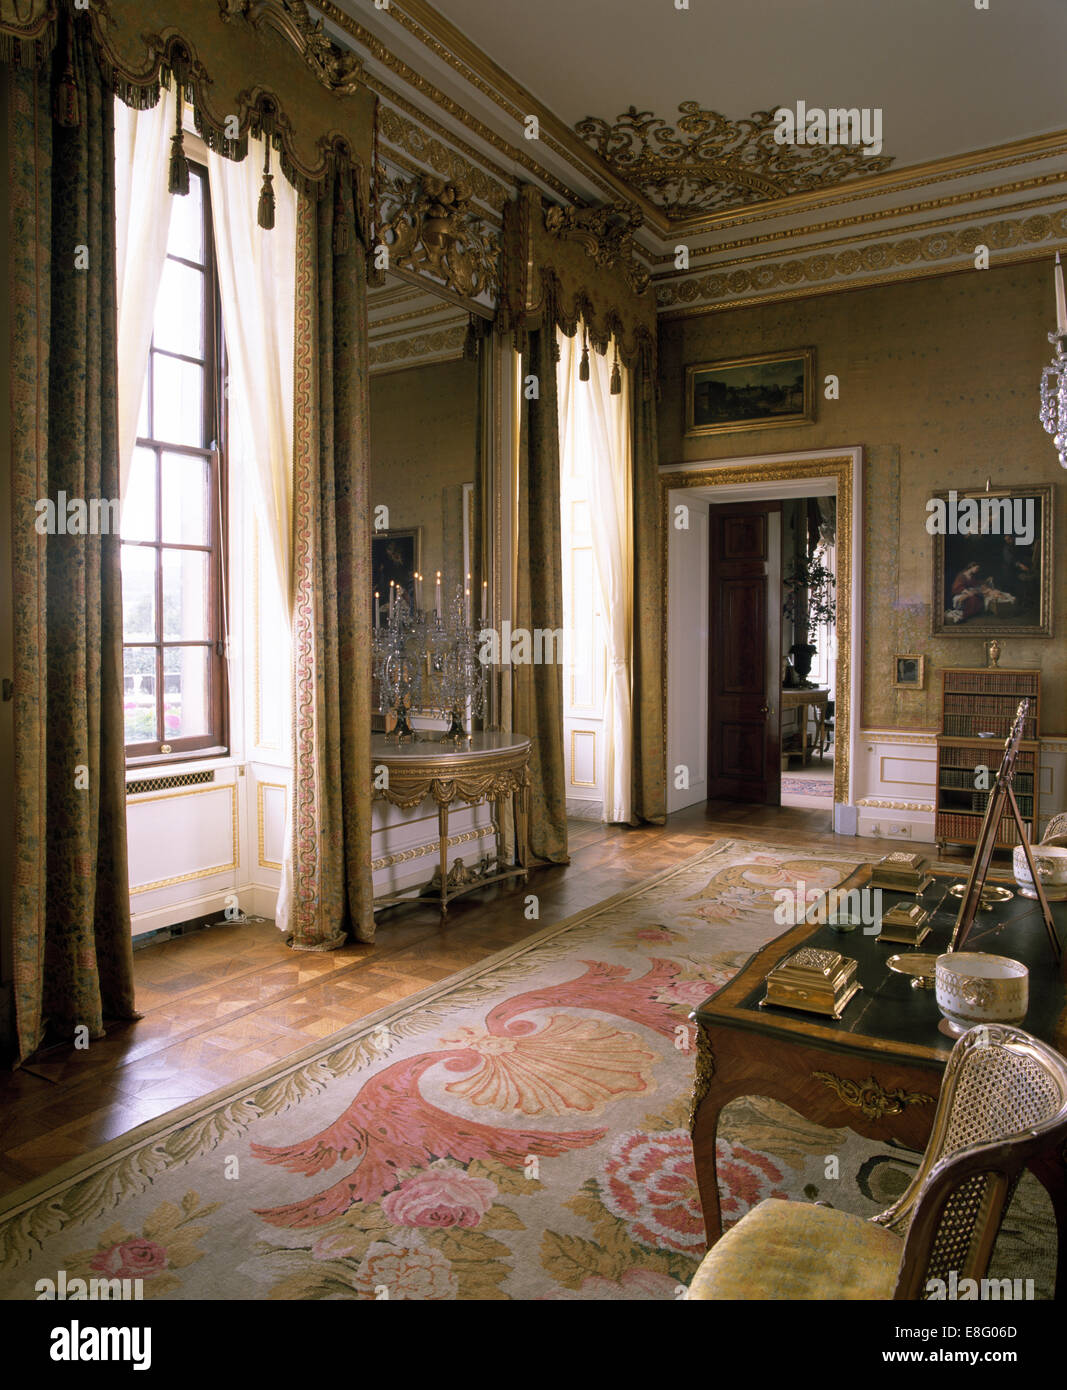 House Room Drawings: Ornate Pelmets On Tall Windows In Stately Home Drawing